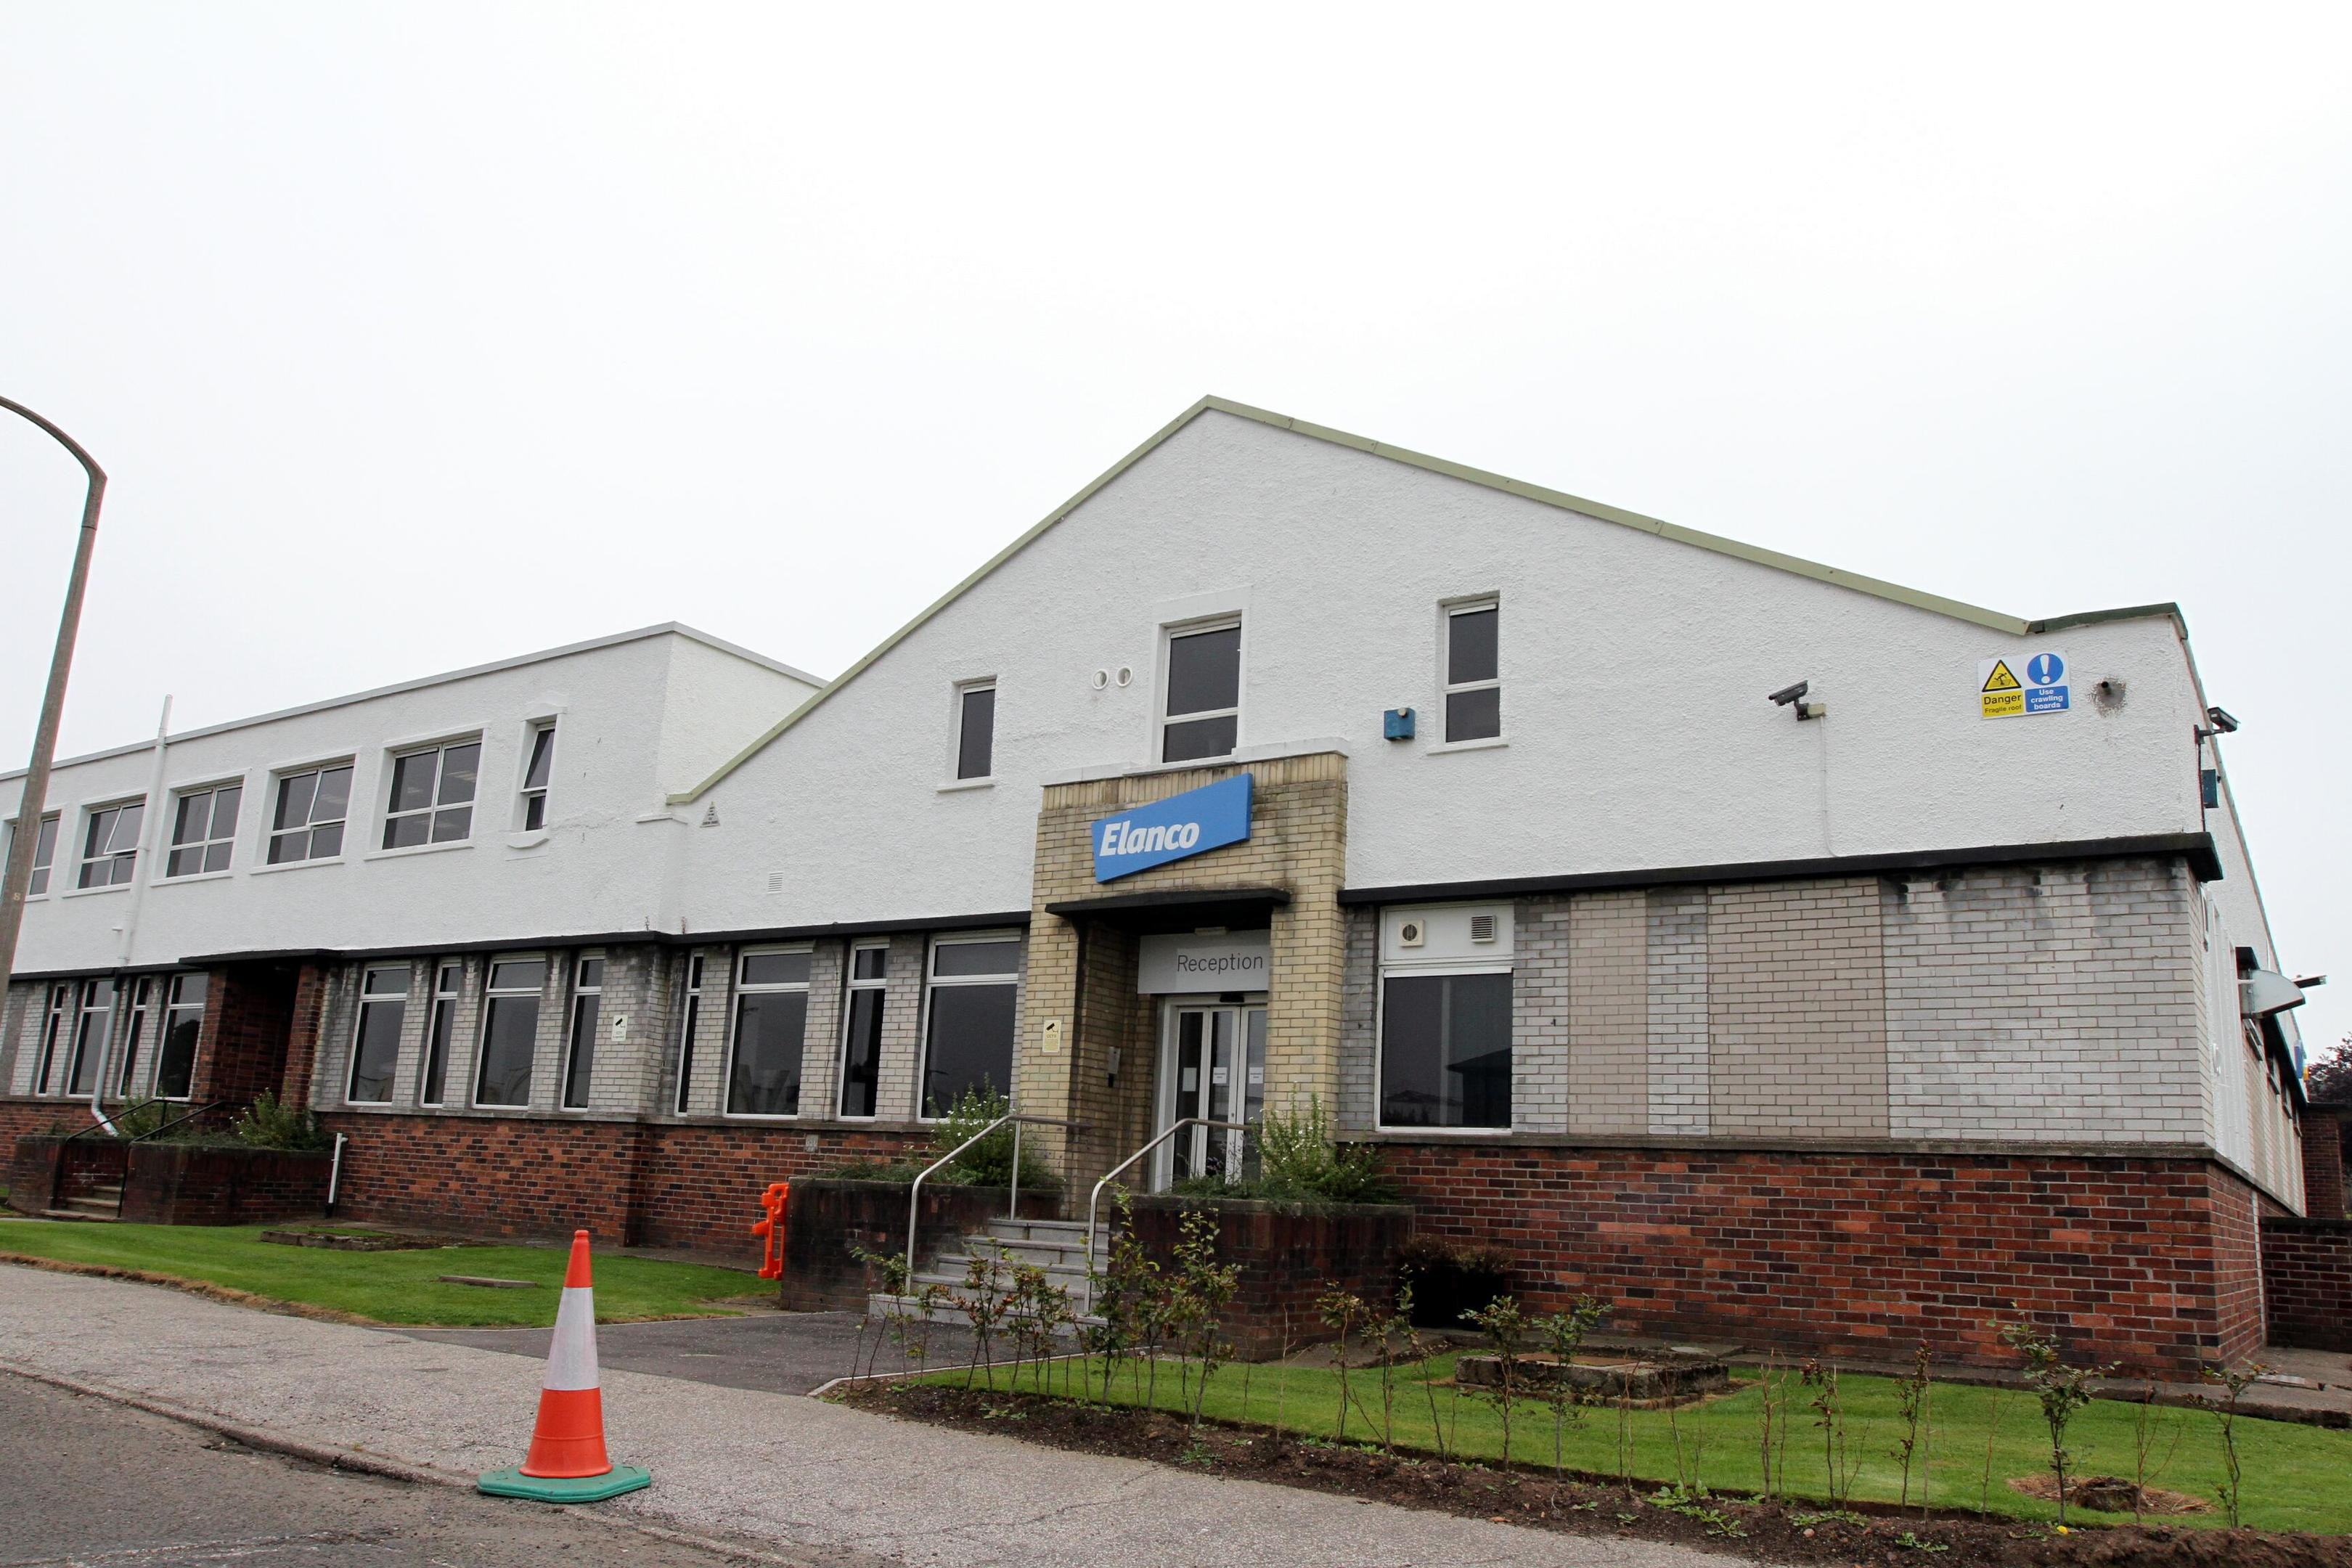 The former Elanco Animal Health site at Dunsinane Industrial estate has been bought over by New Zealand-based Argenta